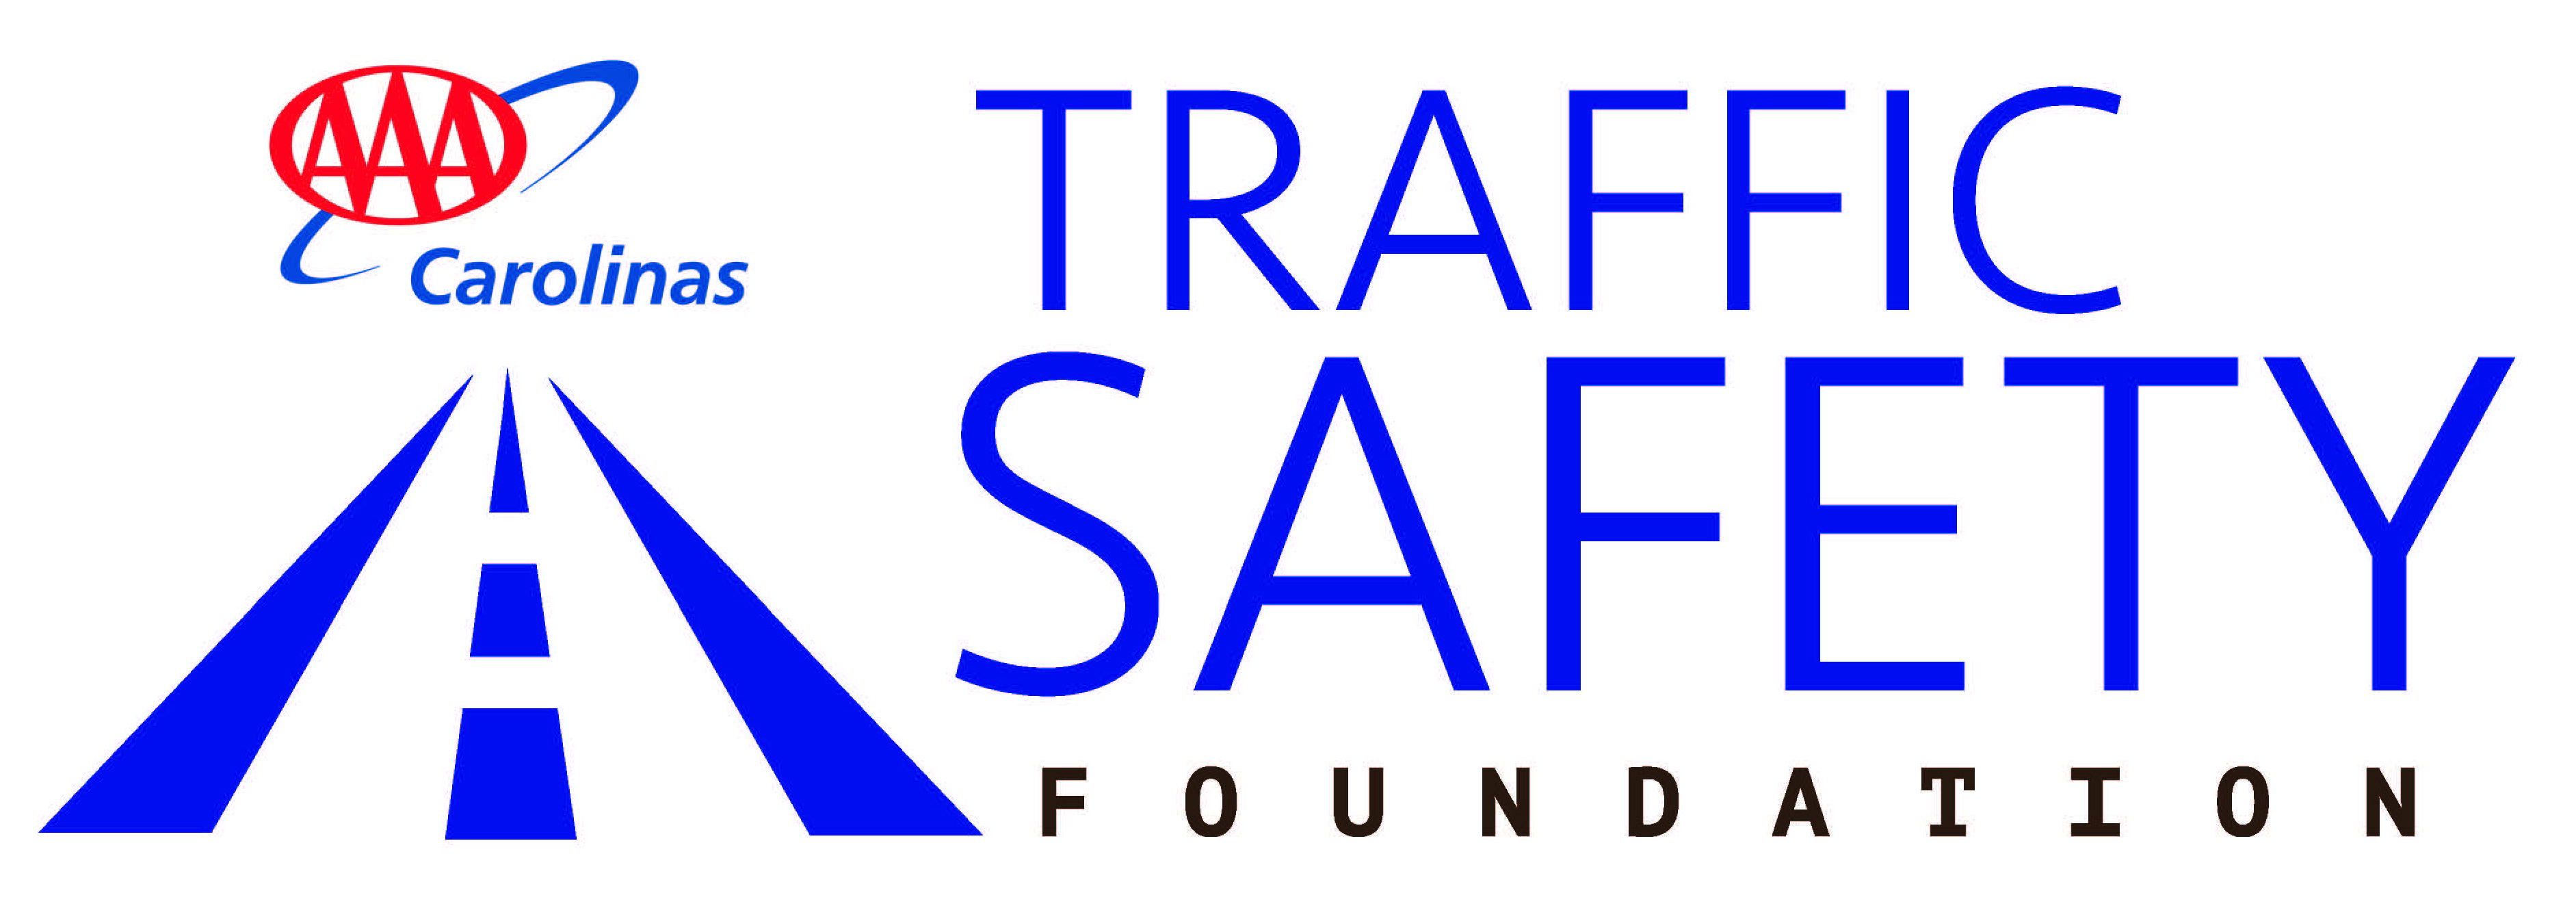 AAA Carolinas Traffic Safety Foundation logo